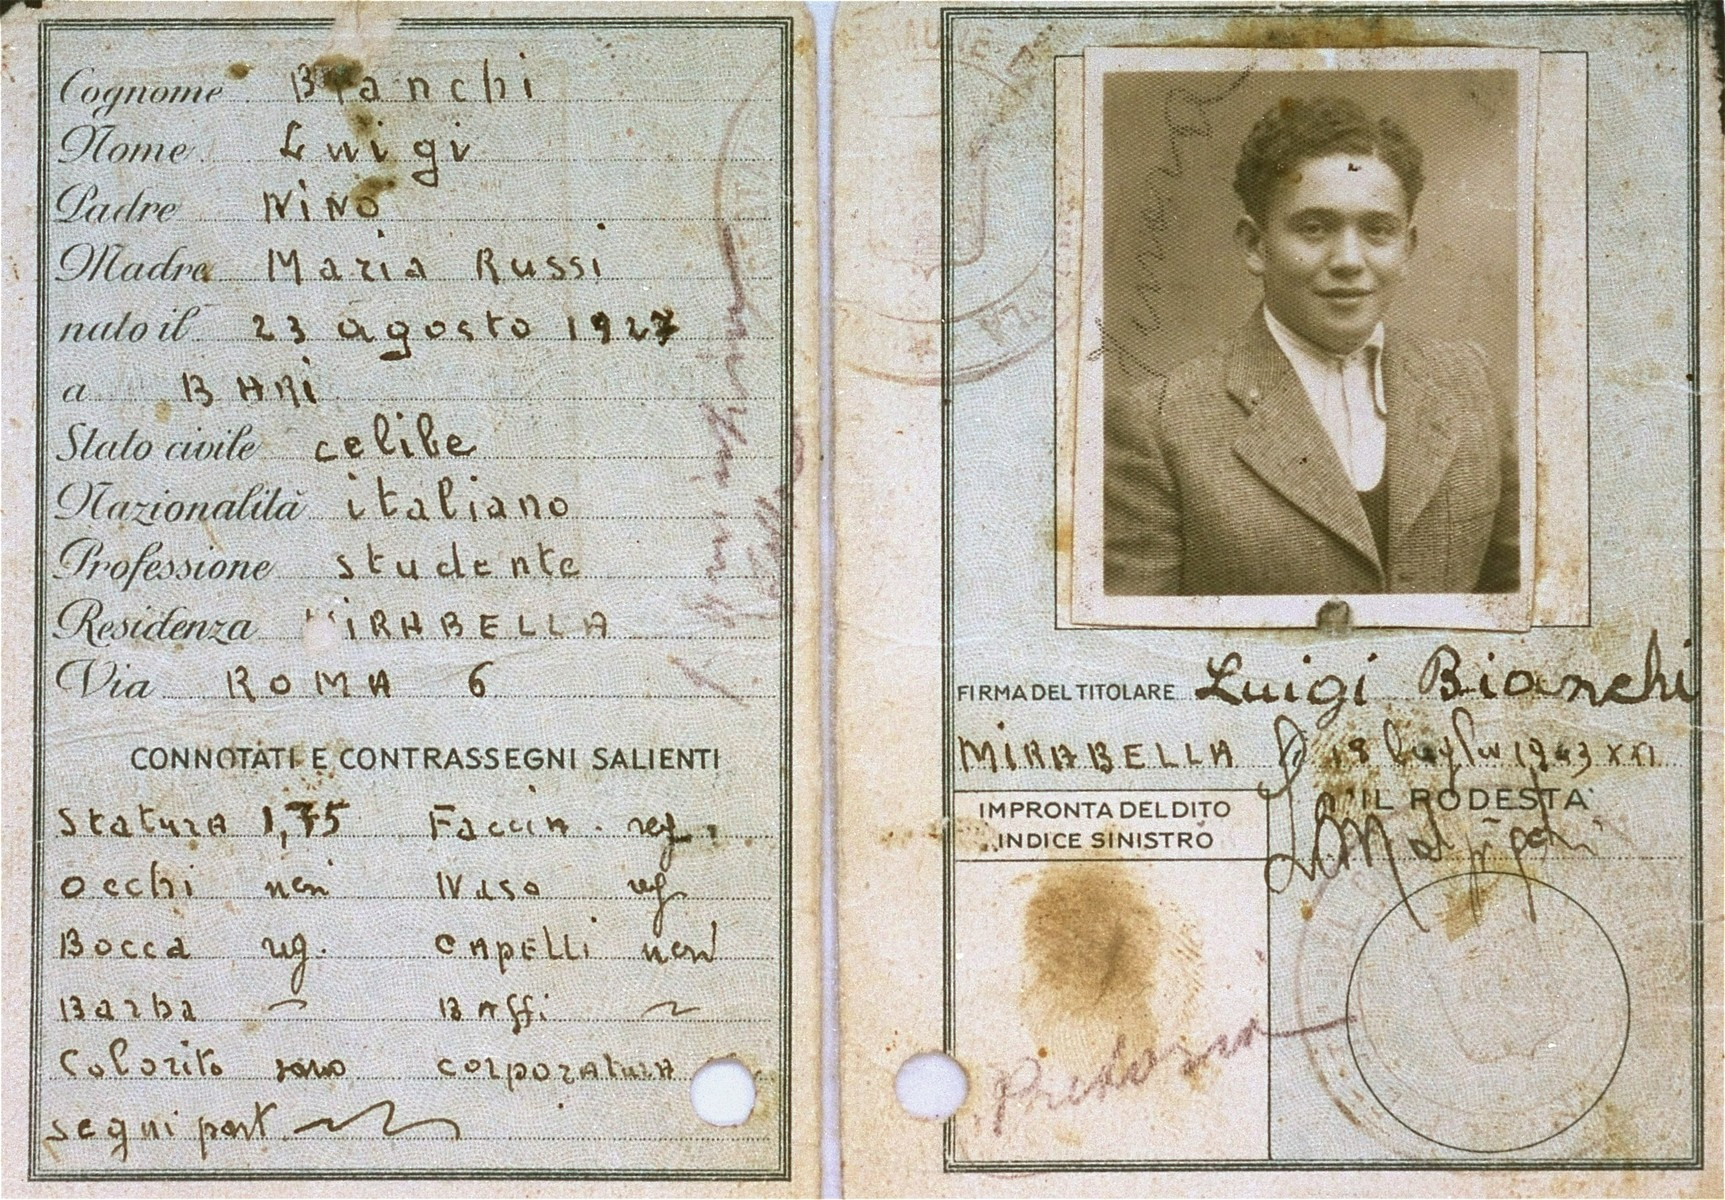 """A false identification card issued by local church authorities to the Croatian Jew, Zdenko Bergl, who was then living in """"free-confinement"""" with the Mitrani-Andreoli family in Modena, Italy, under the name of Luigi Bianchi.   The identity card, which was issued after the German occupation of Italy, registered his place of birth as Bari, a town in the part of Italy already under Allied control.  Verification was therefore impossible."""